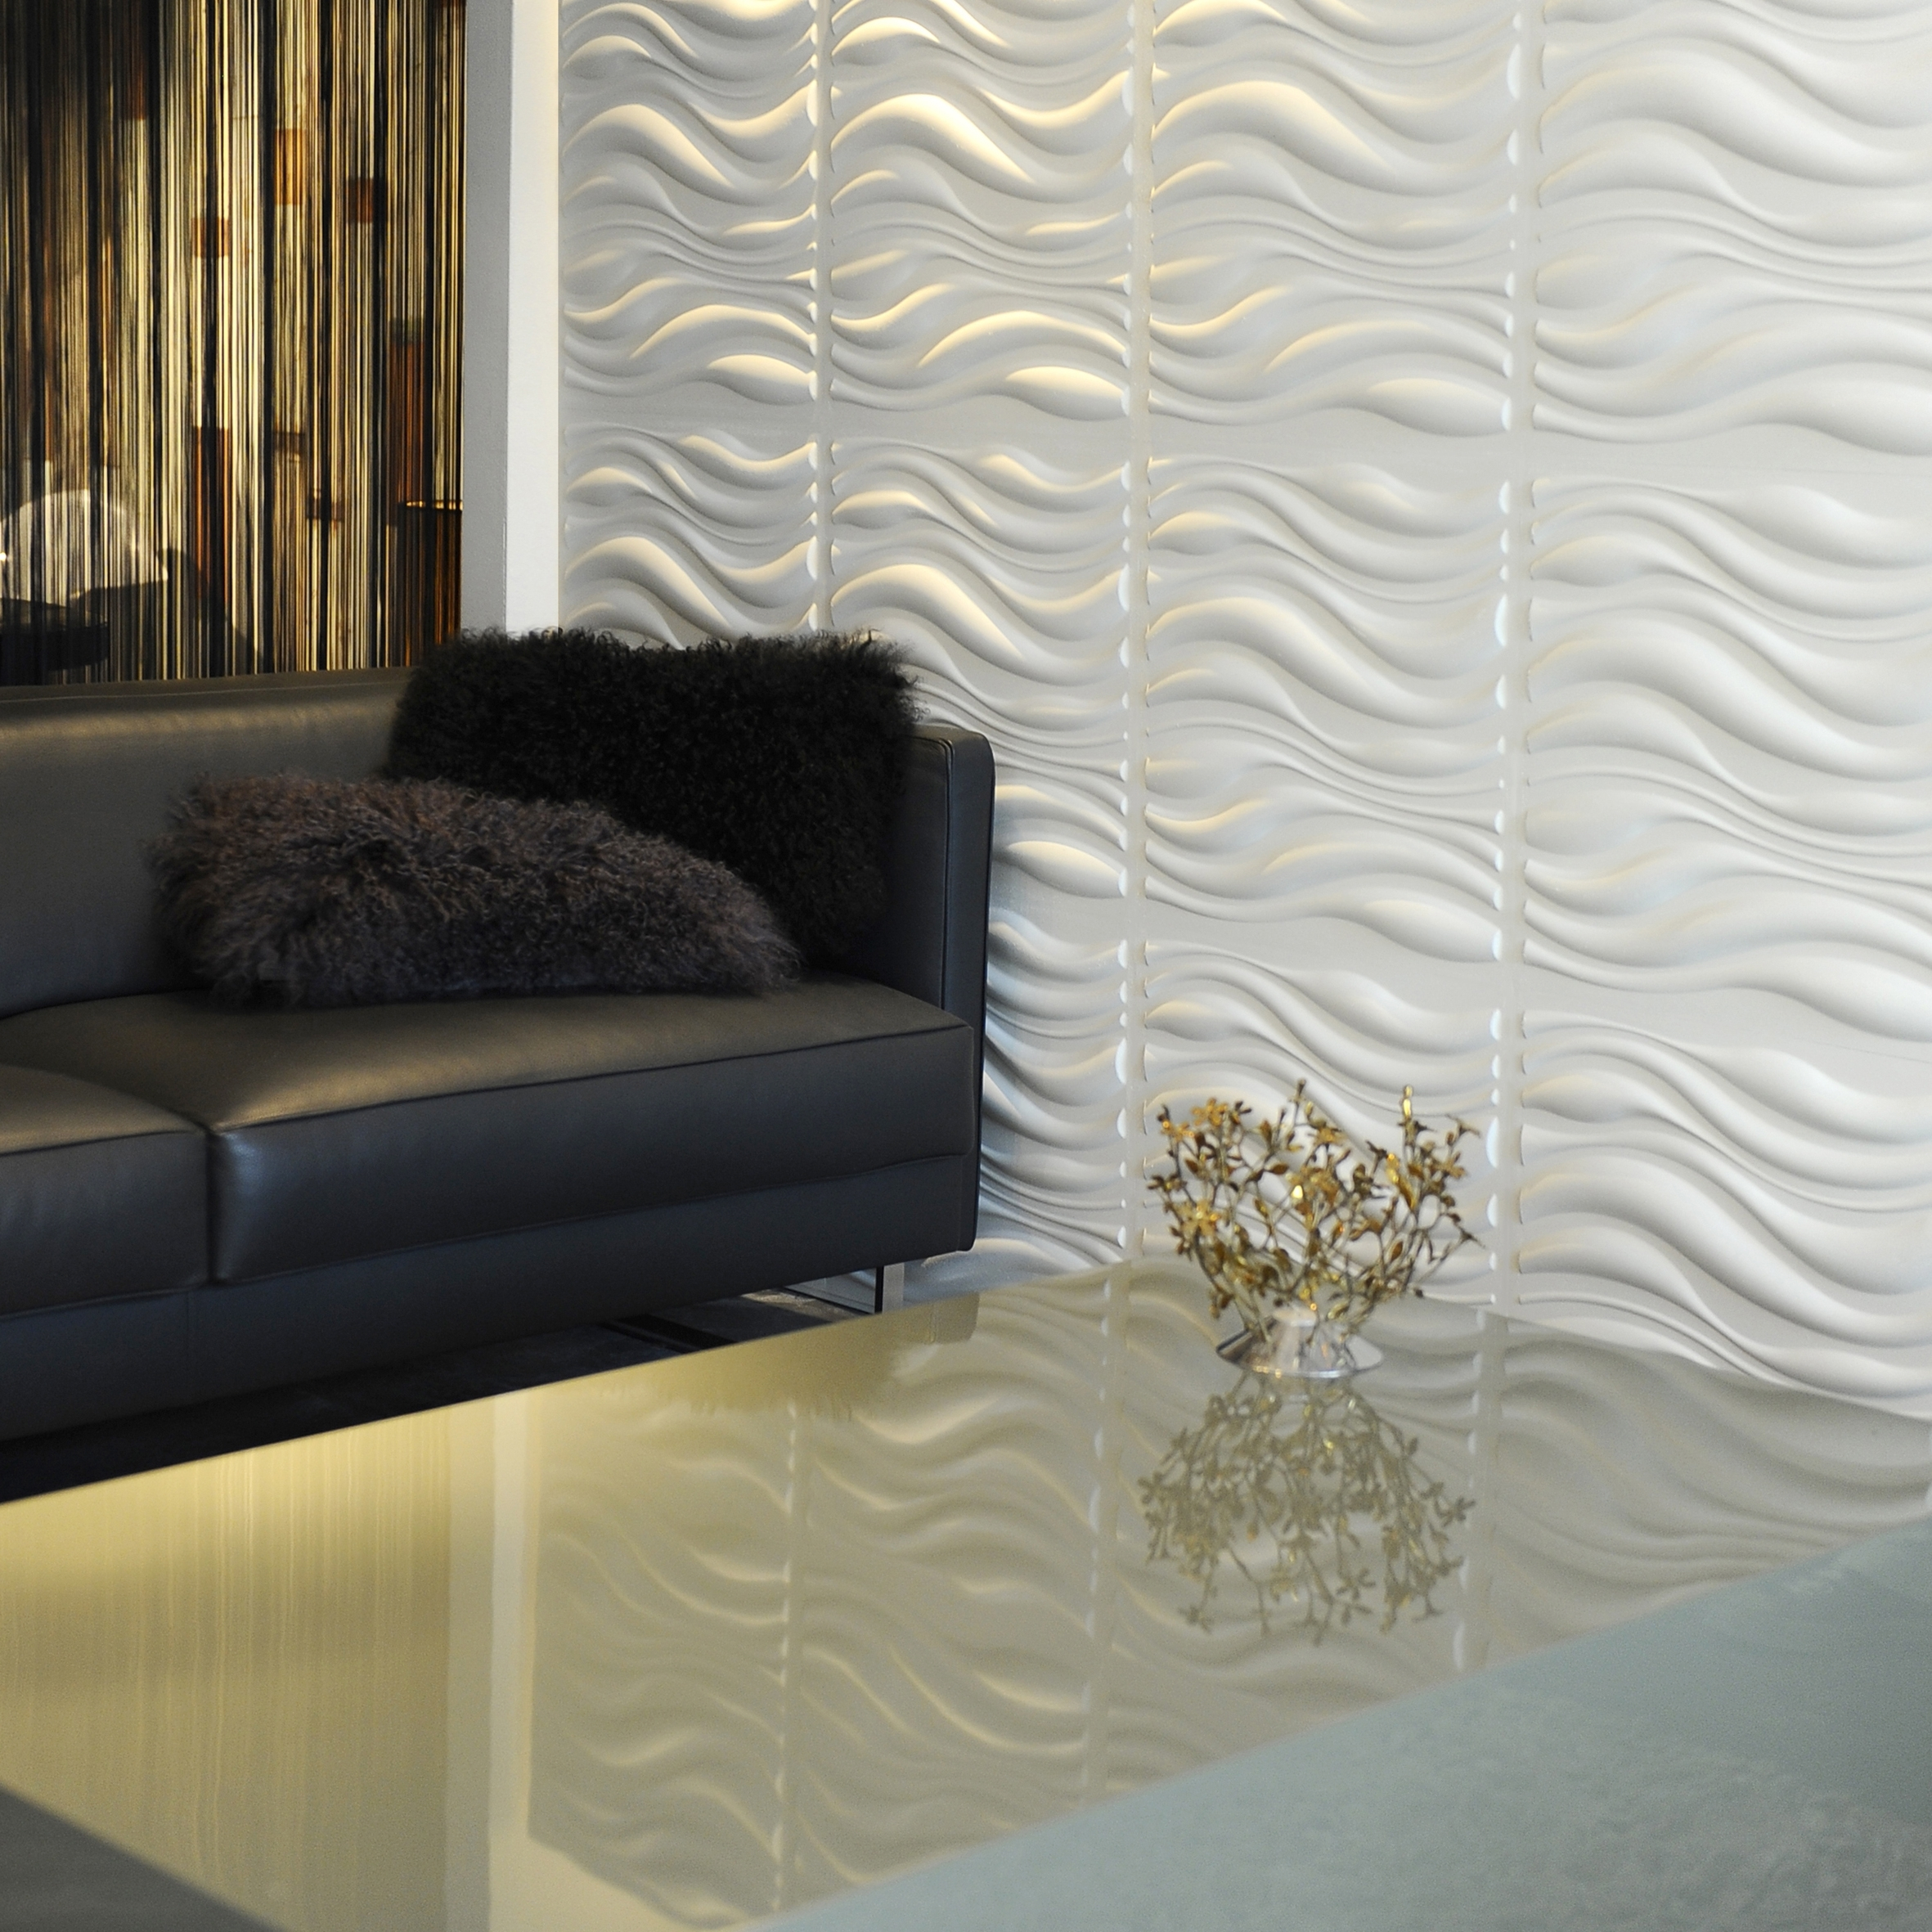 Preferred Wallart Will Bring Your Walls To Life – The Art Of Design Magazine With Venezuela Wall Art 3D (View 4 of 15)